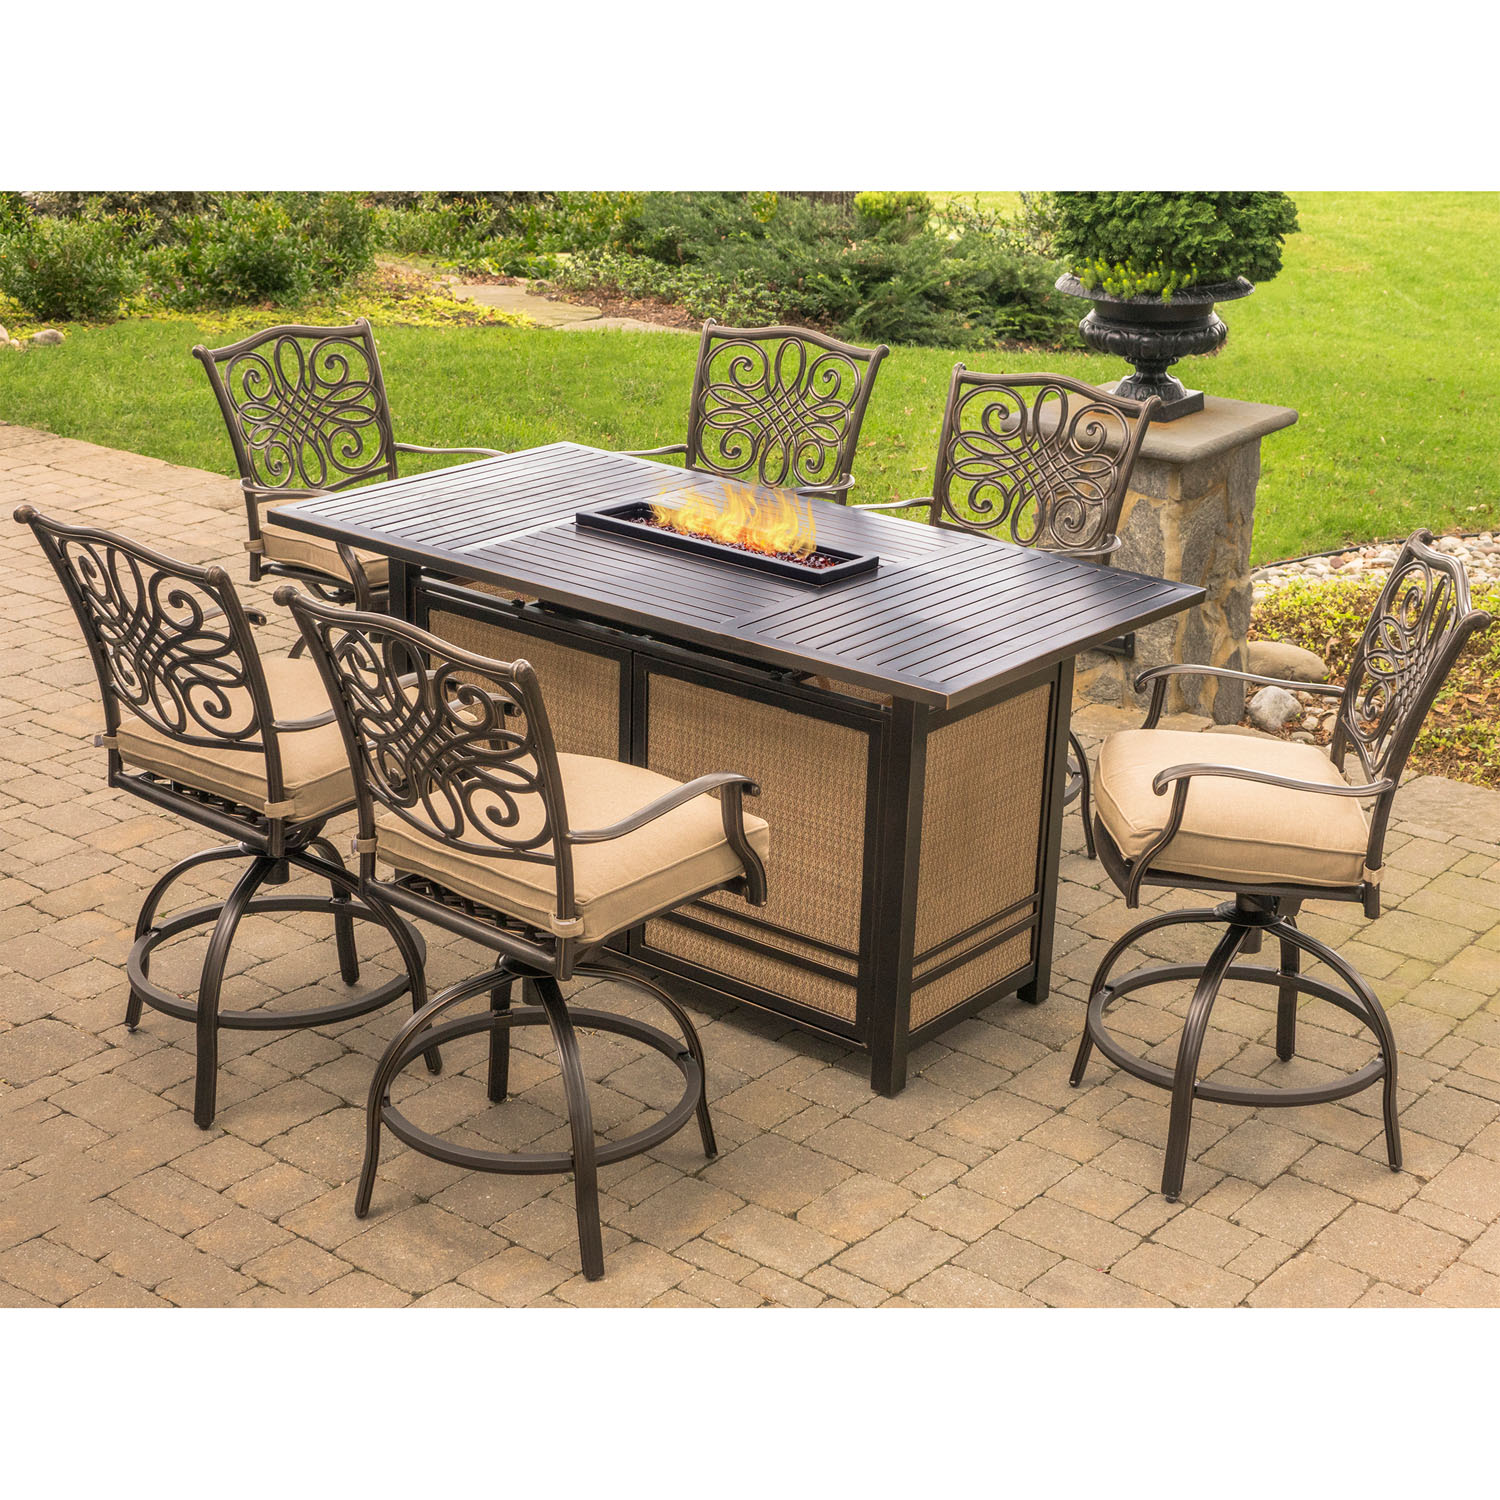 High Dinner Table Set: Hanover Traditions 7-Piece High-Dining Set In Tan With